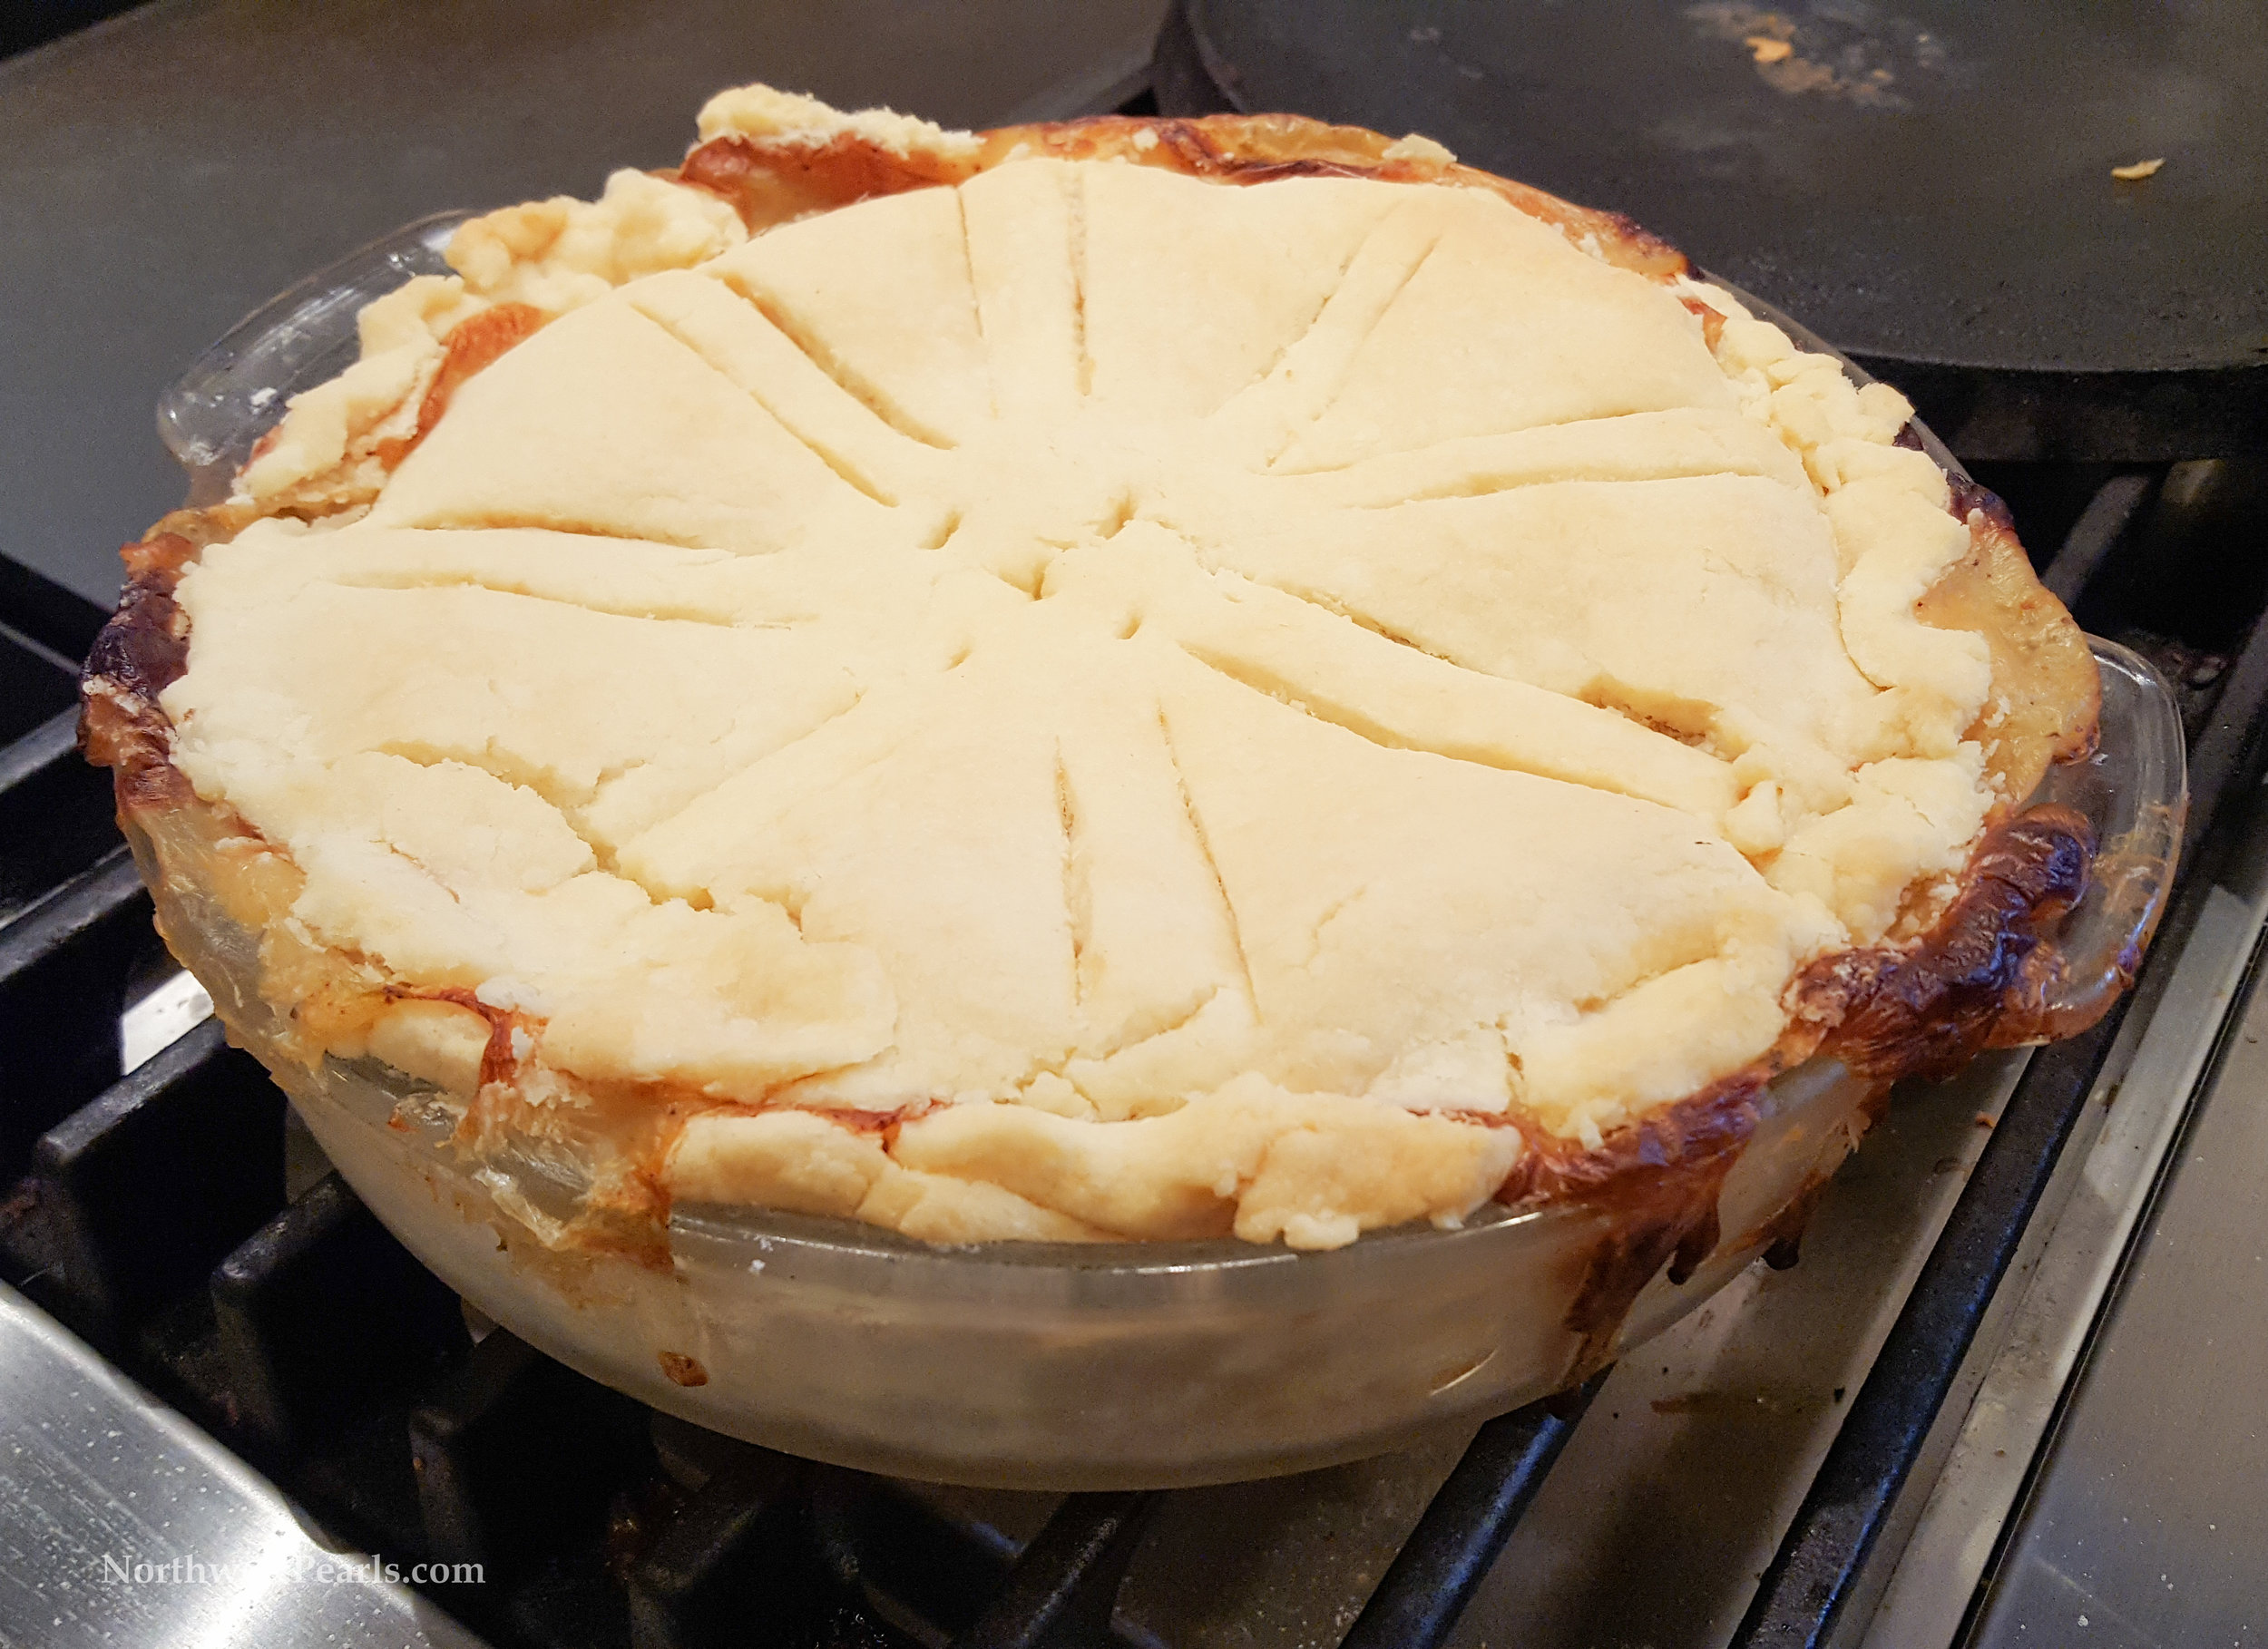 Northwest Pearls: Homemade Chicken Pot Pie